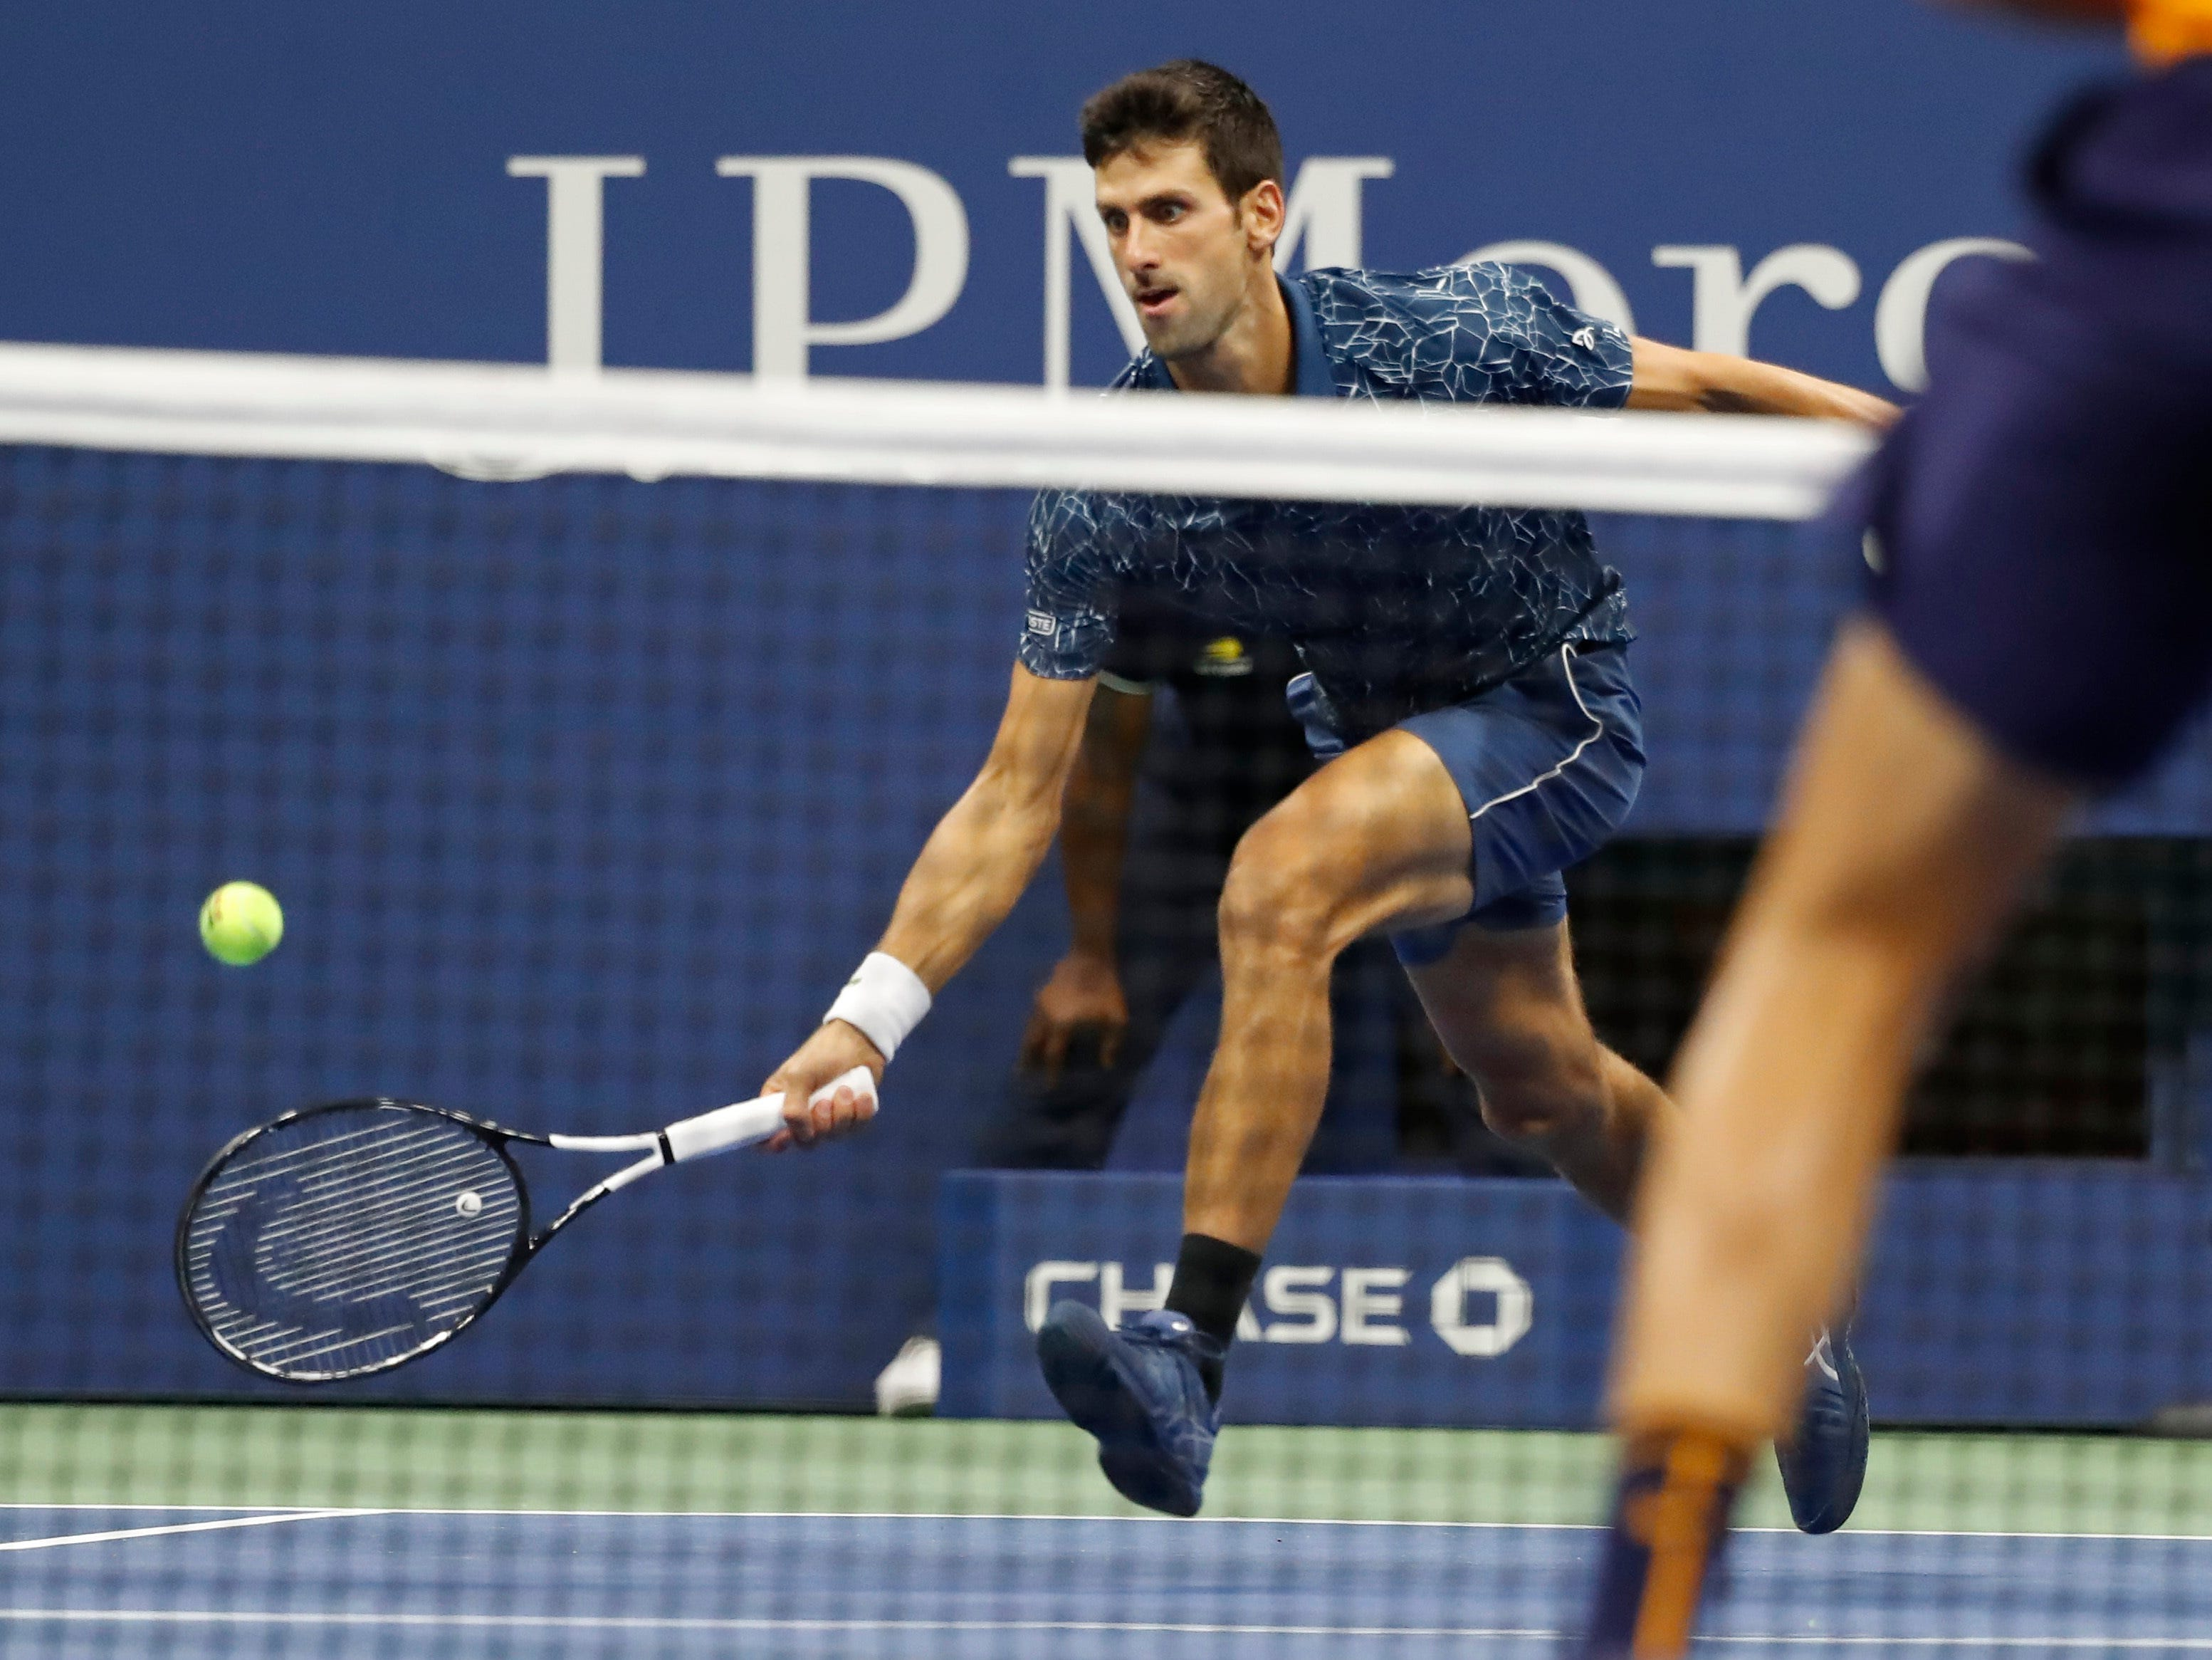 Novak Djokovic reaches for a forehand return against Juan Martin del Potro.